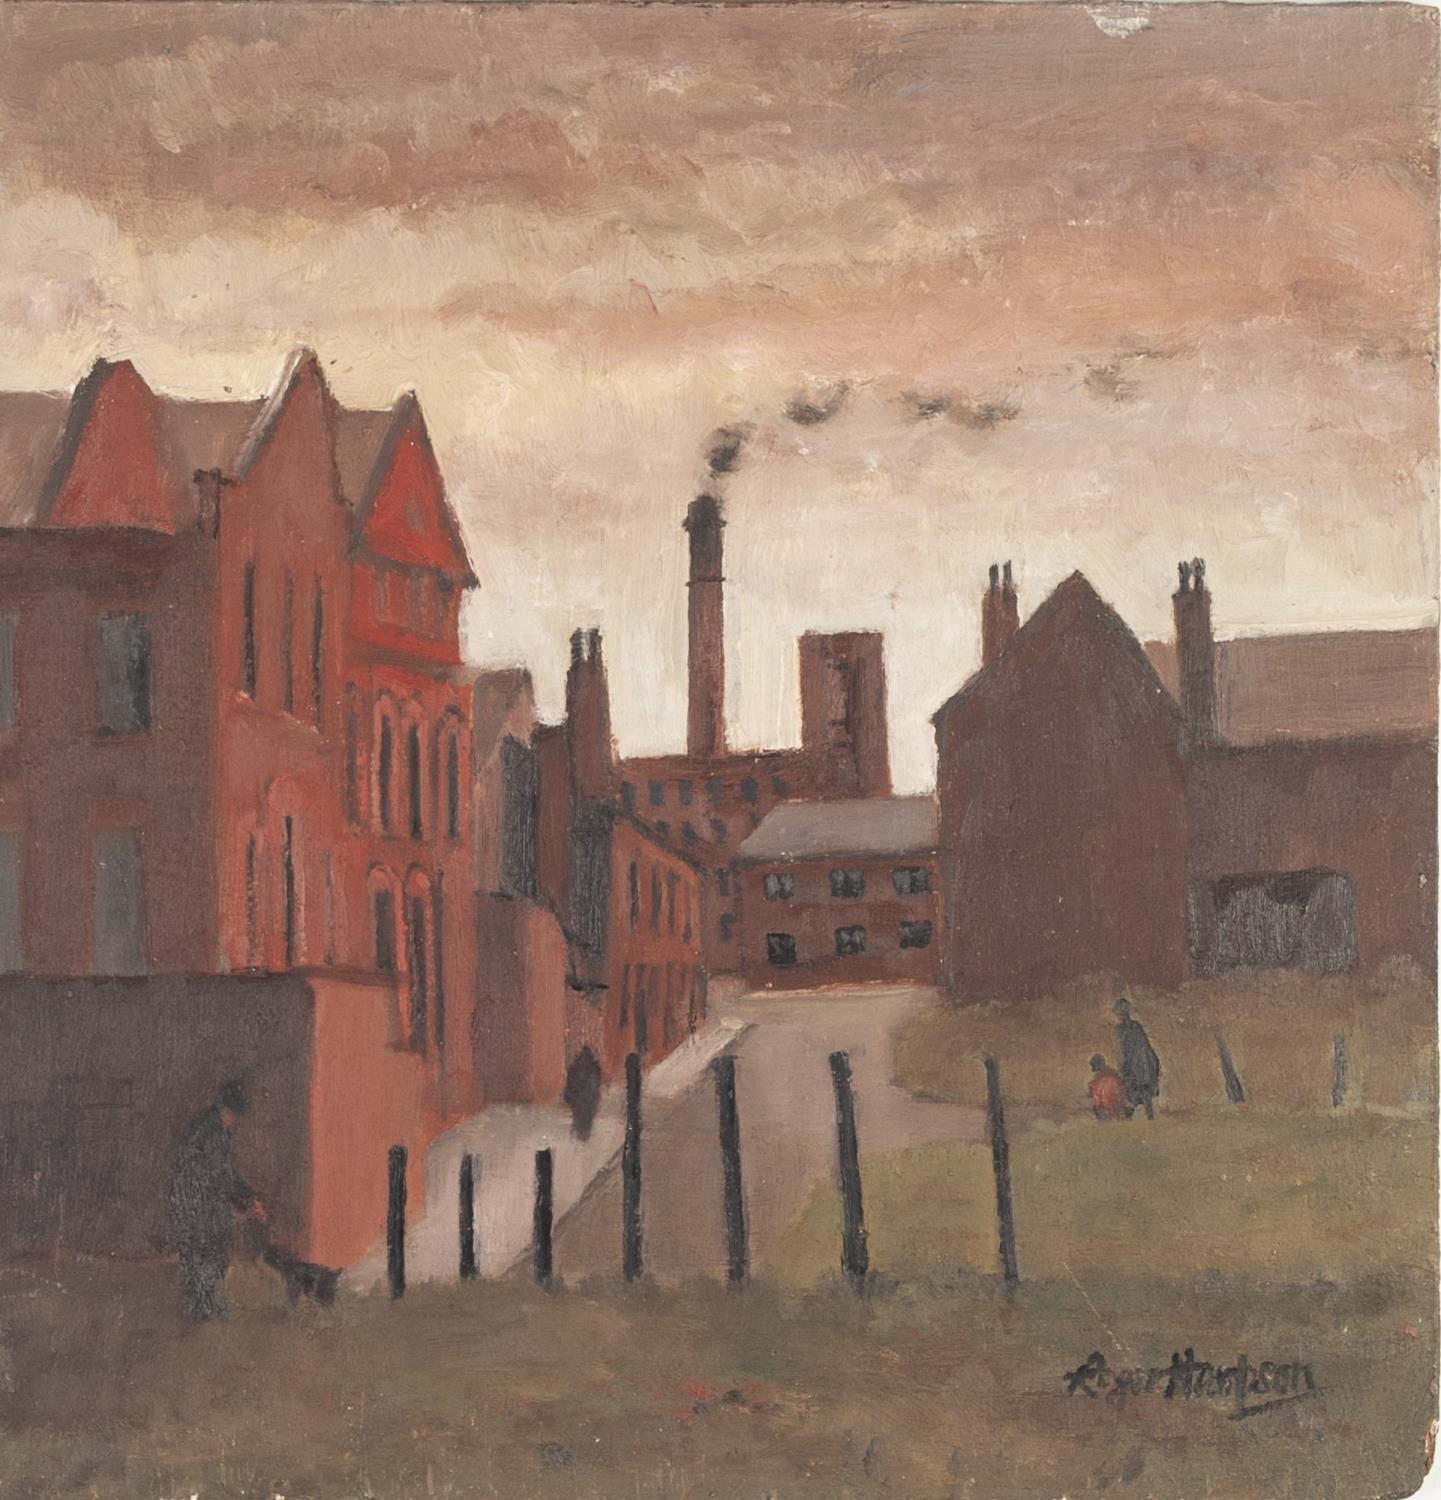 Lot 65 - ROGER HAMPSON (1925 - 1996) OIL PAINTING ON BOARD 'Noble Street, Bolton' Signed, titled and numbered